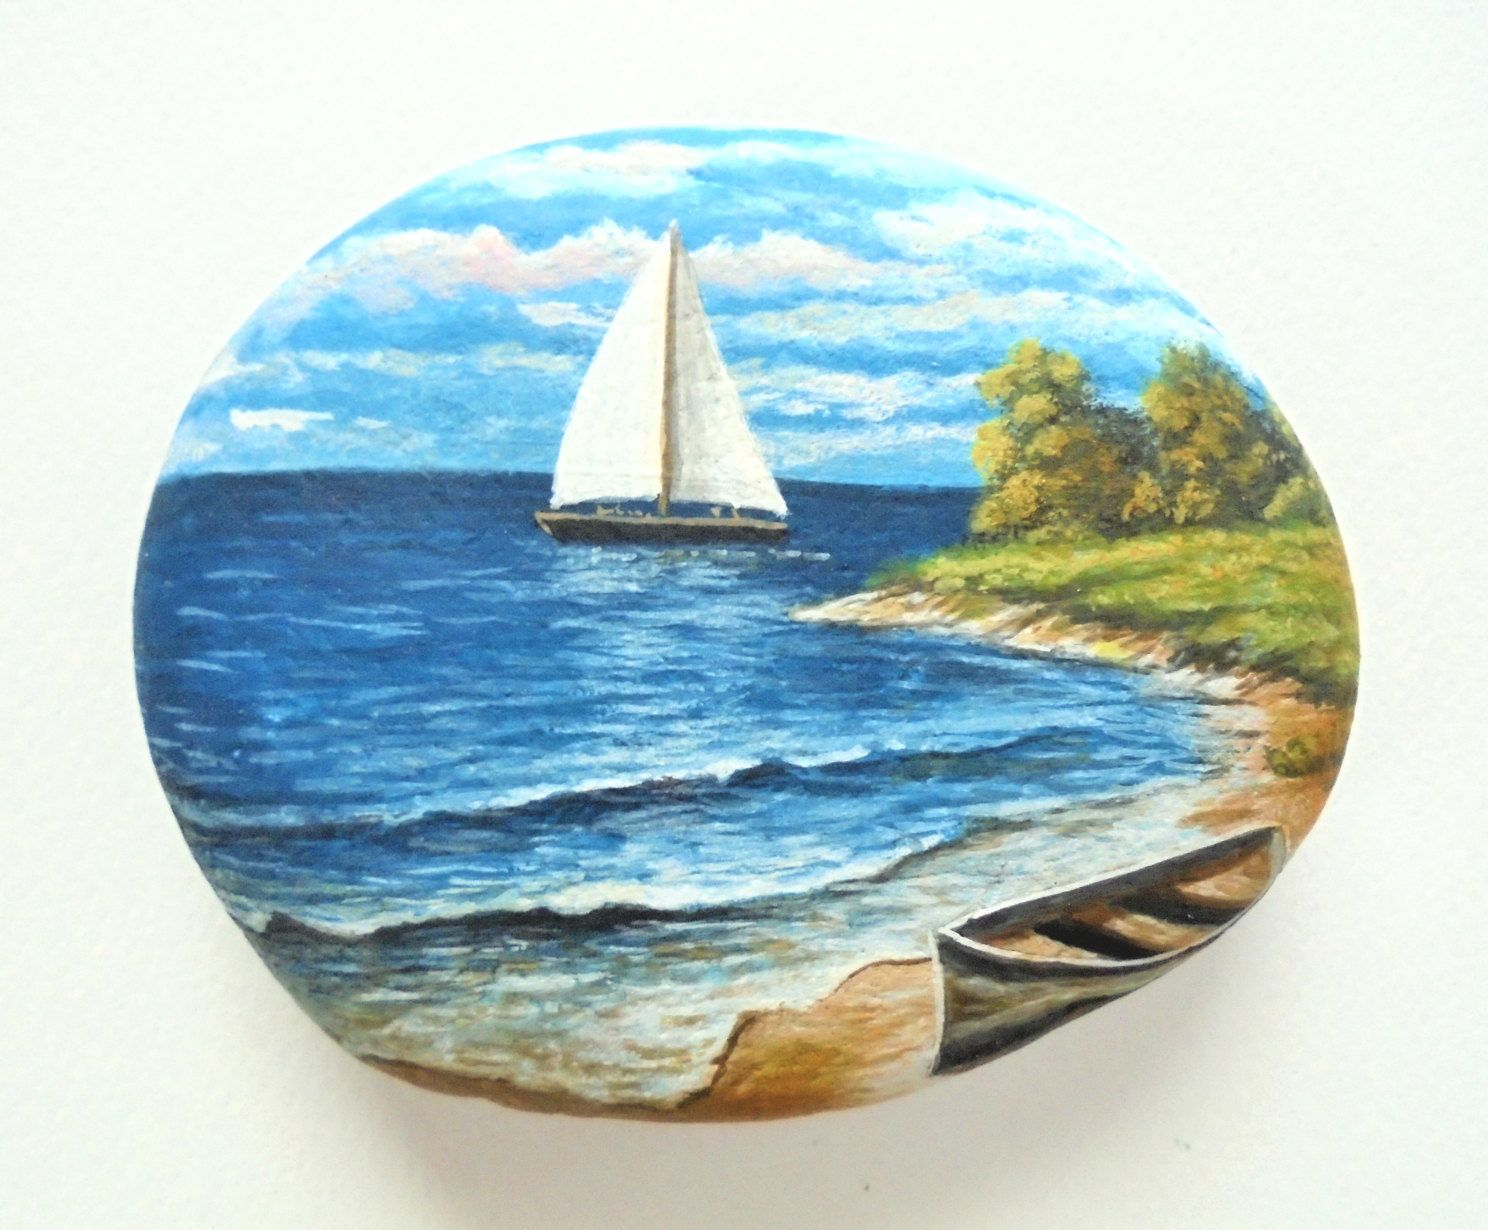 Landscape Rock Painting With Boat On The Beach Painted On A Sea Stone With Acrylic Paints And